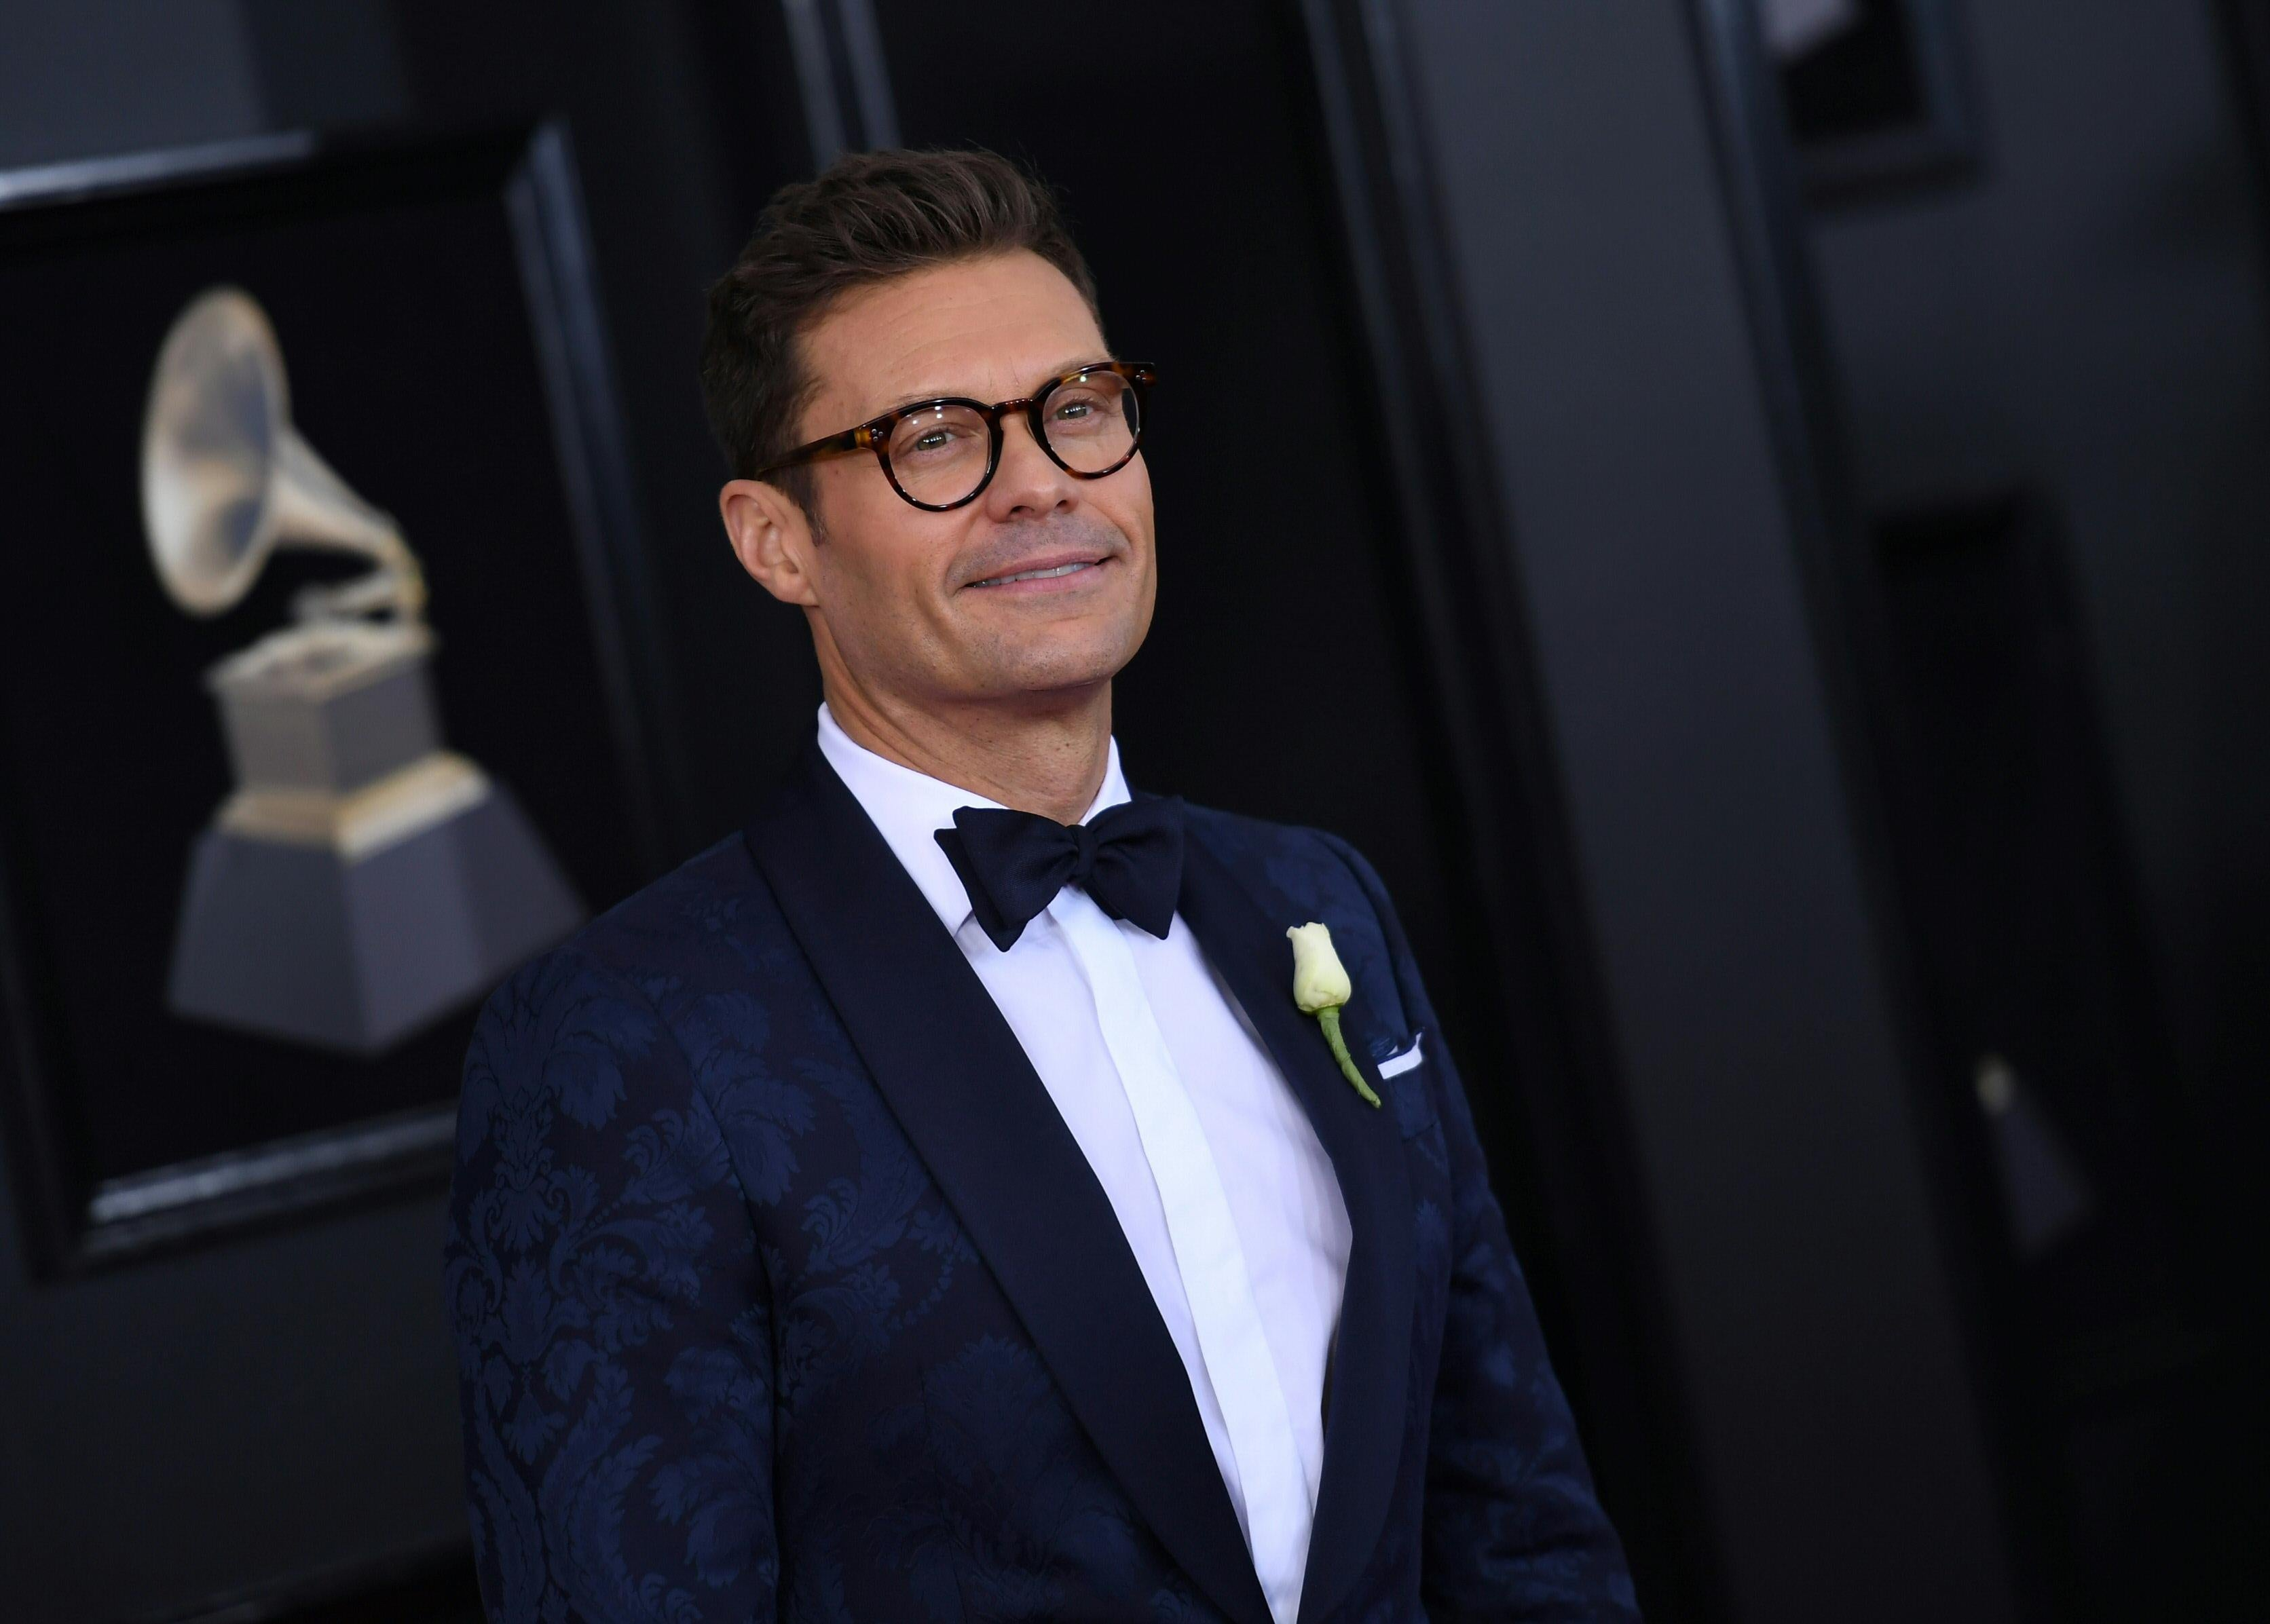 Ryan Seacrest arrives for the 60th Grammy Awards.